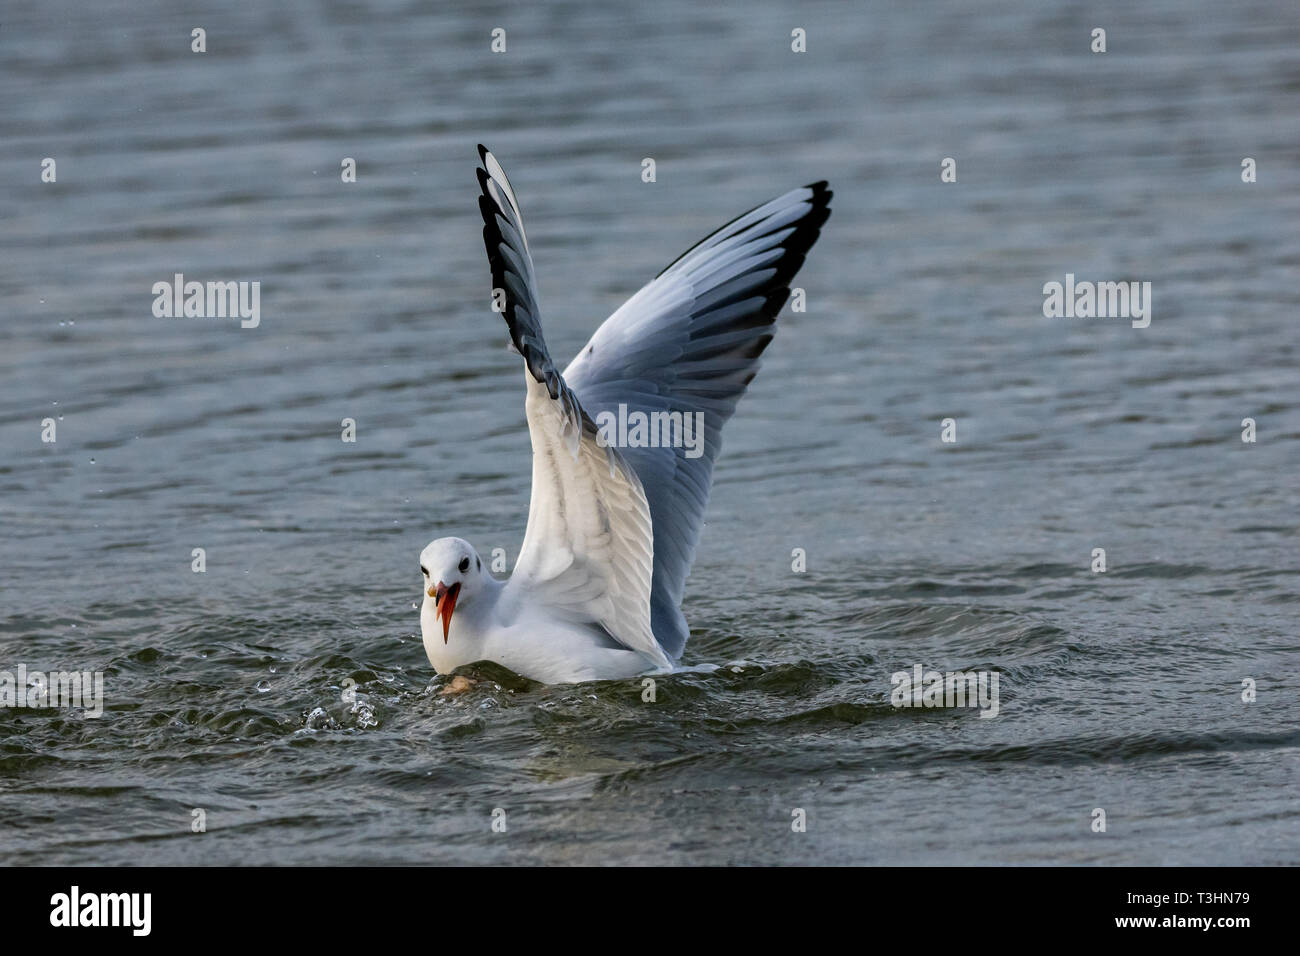 Seagulls diving into lake water for bread Stock Photo